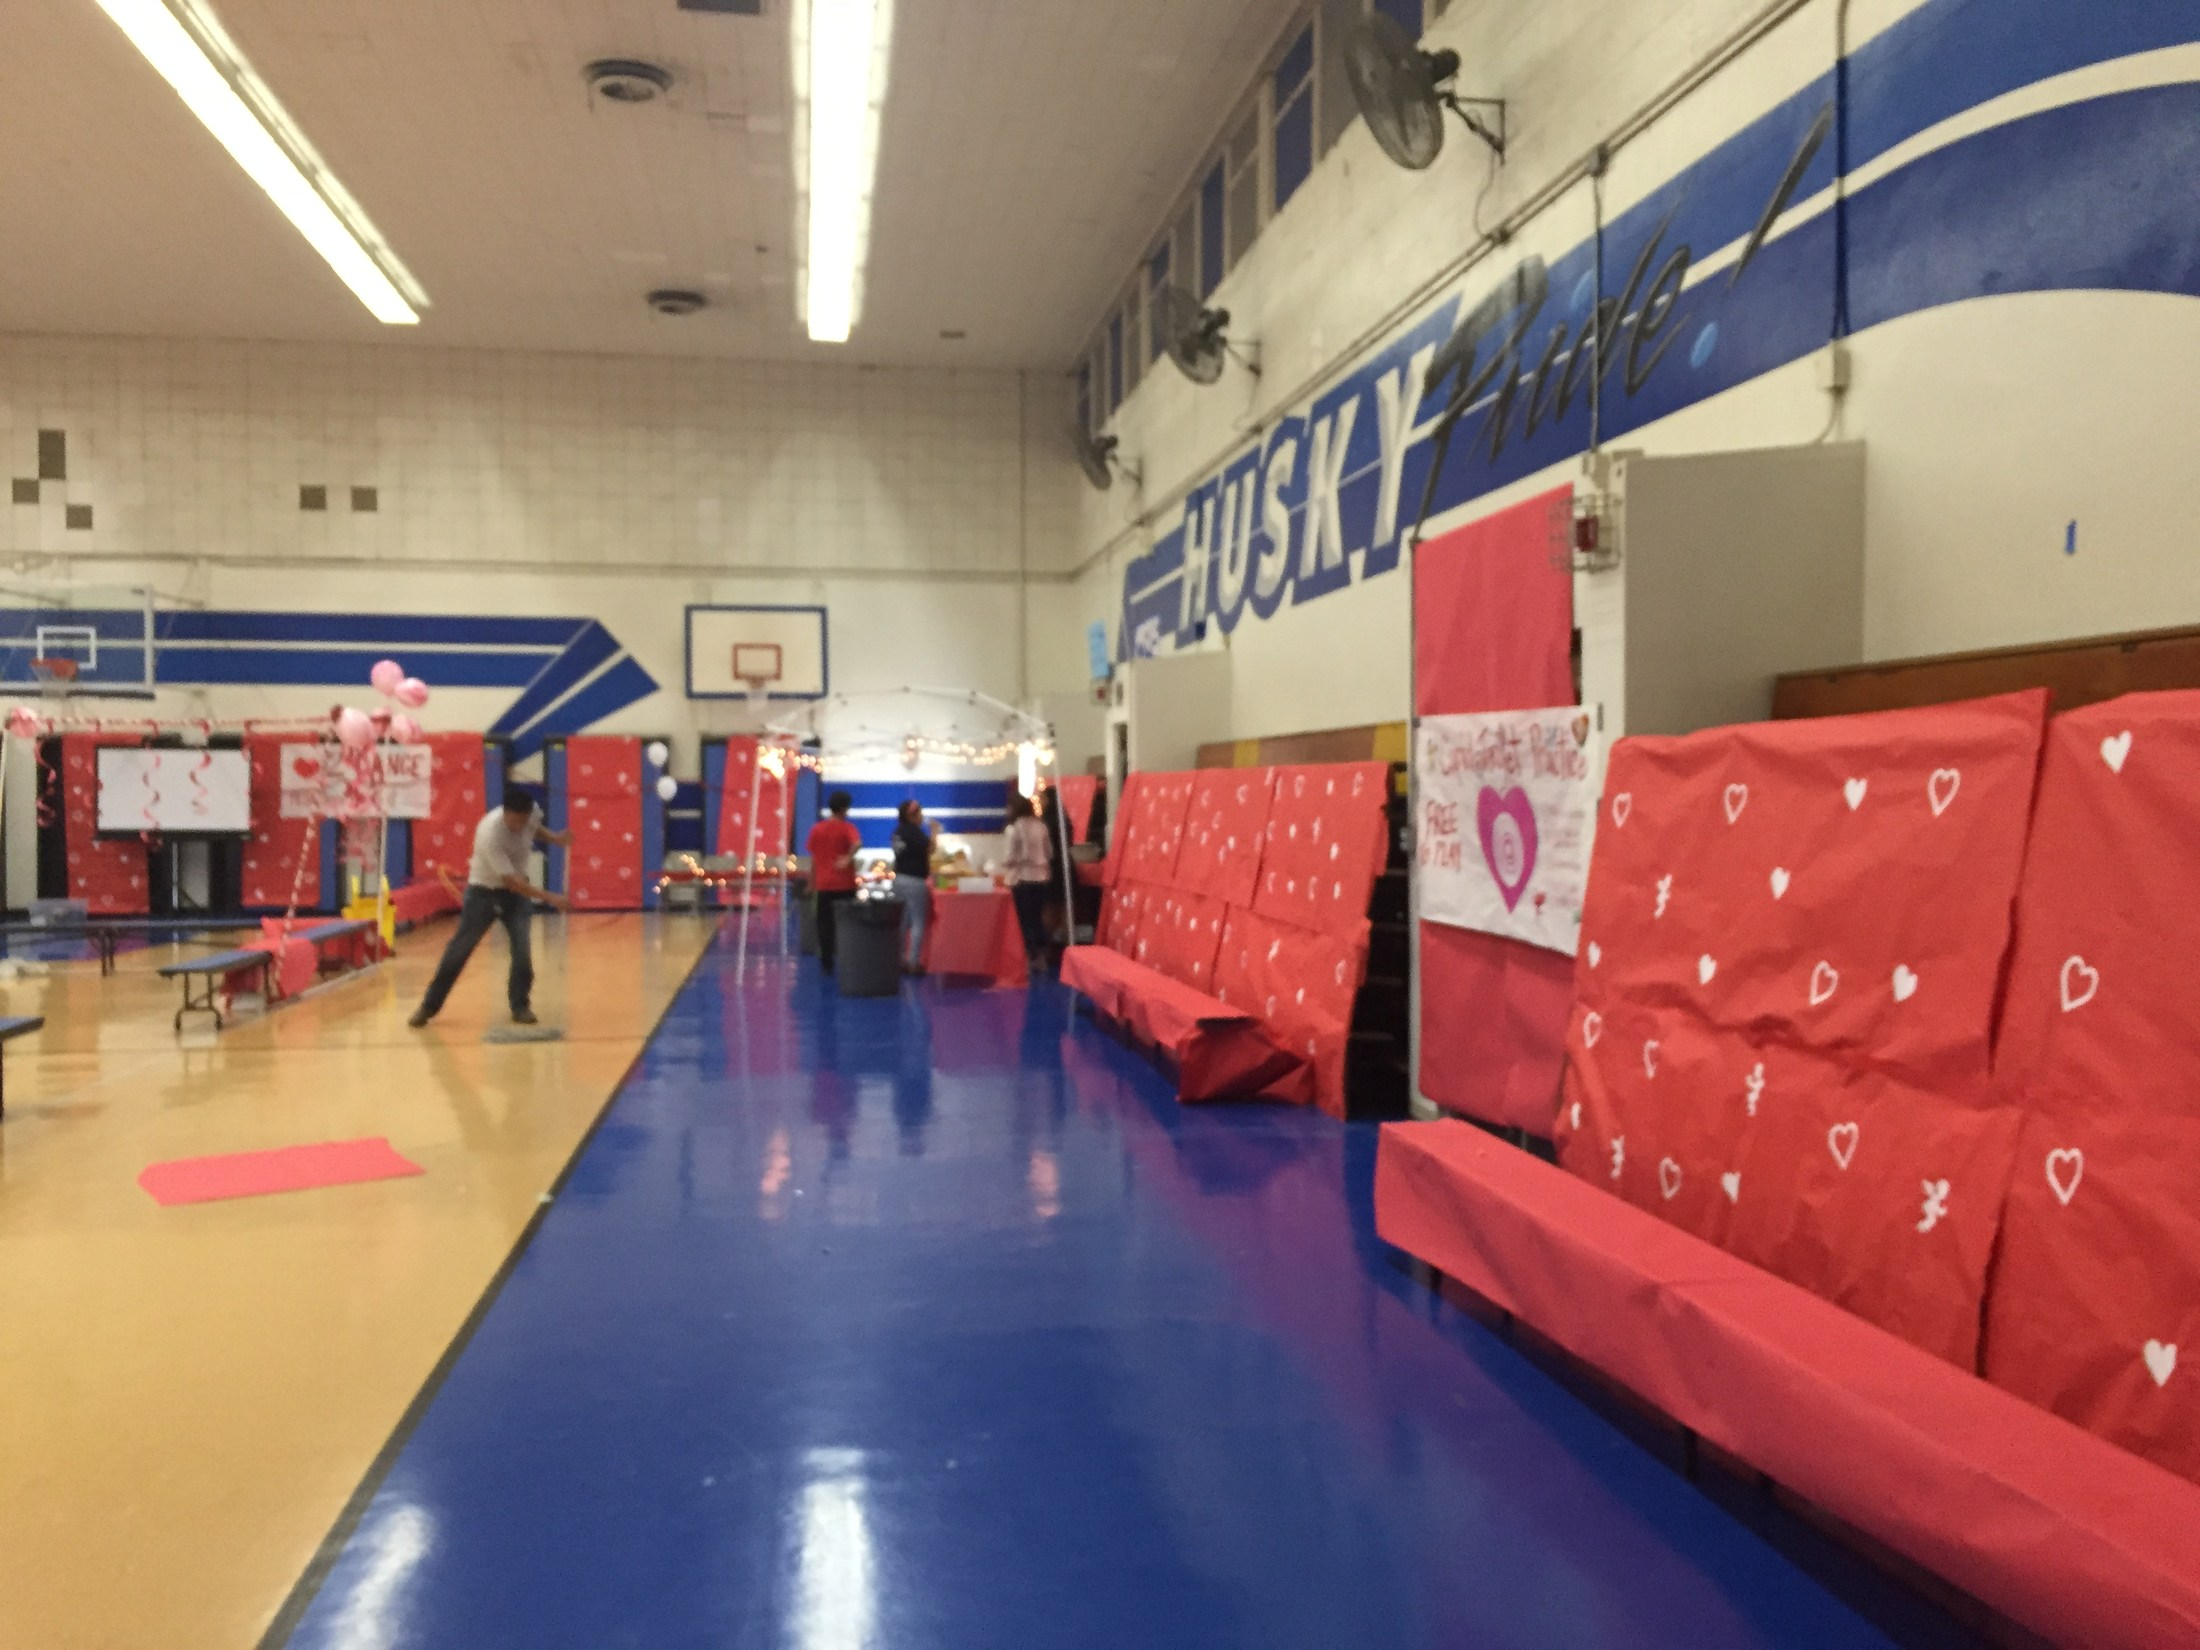 Setting up the gym for a Valentine's Day event